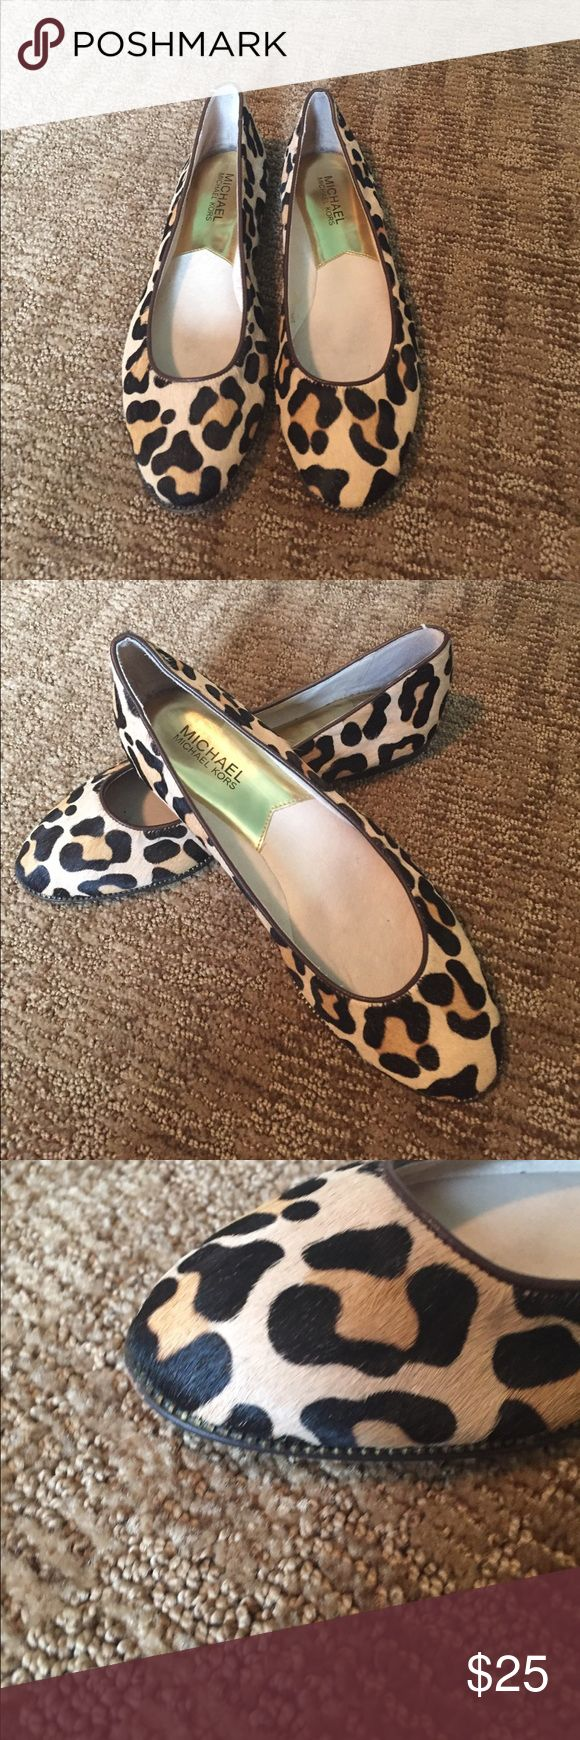 Shoes Animal hair animal print ballet flats. Small brass stud trim. Excellent condition. No trades. Michael Kors Shoes Flats & Loafers